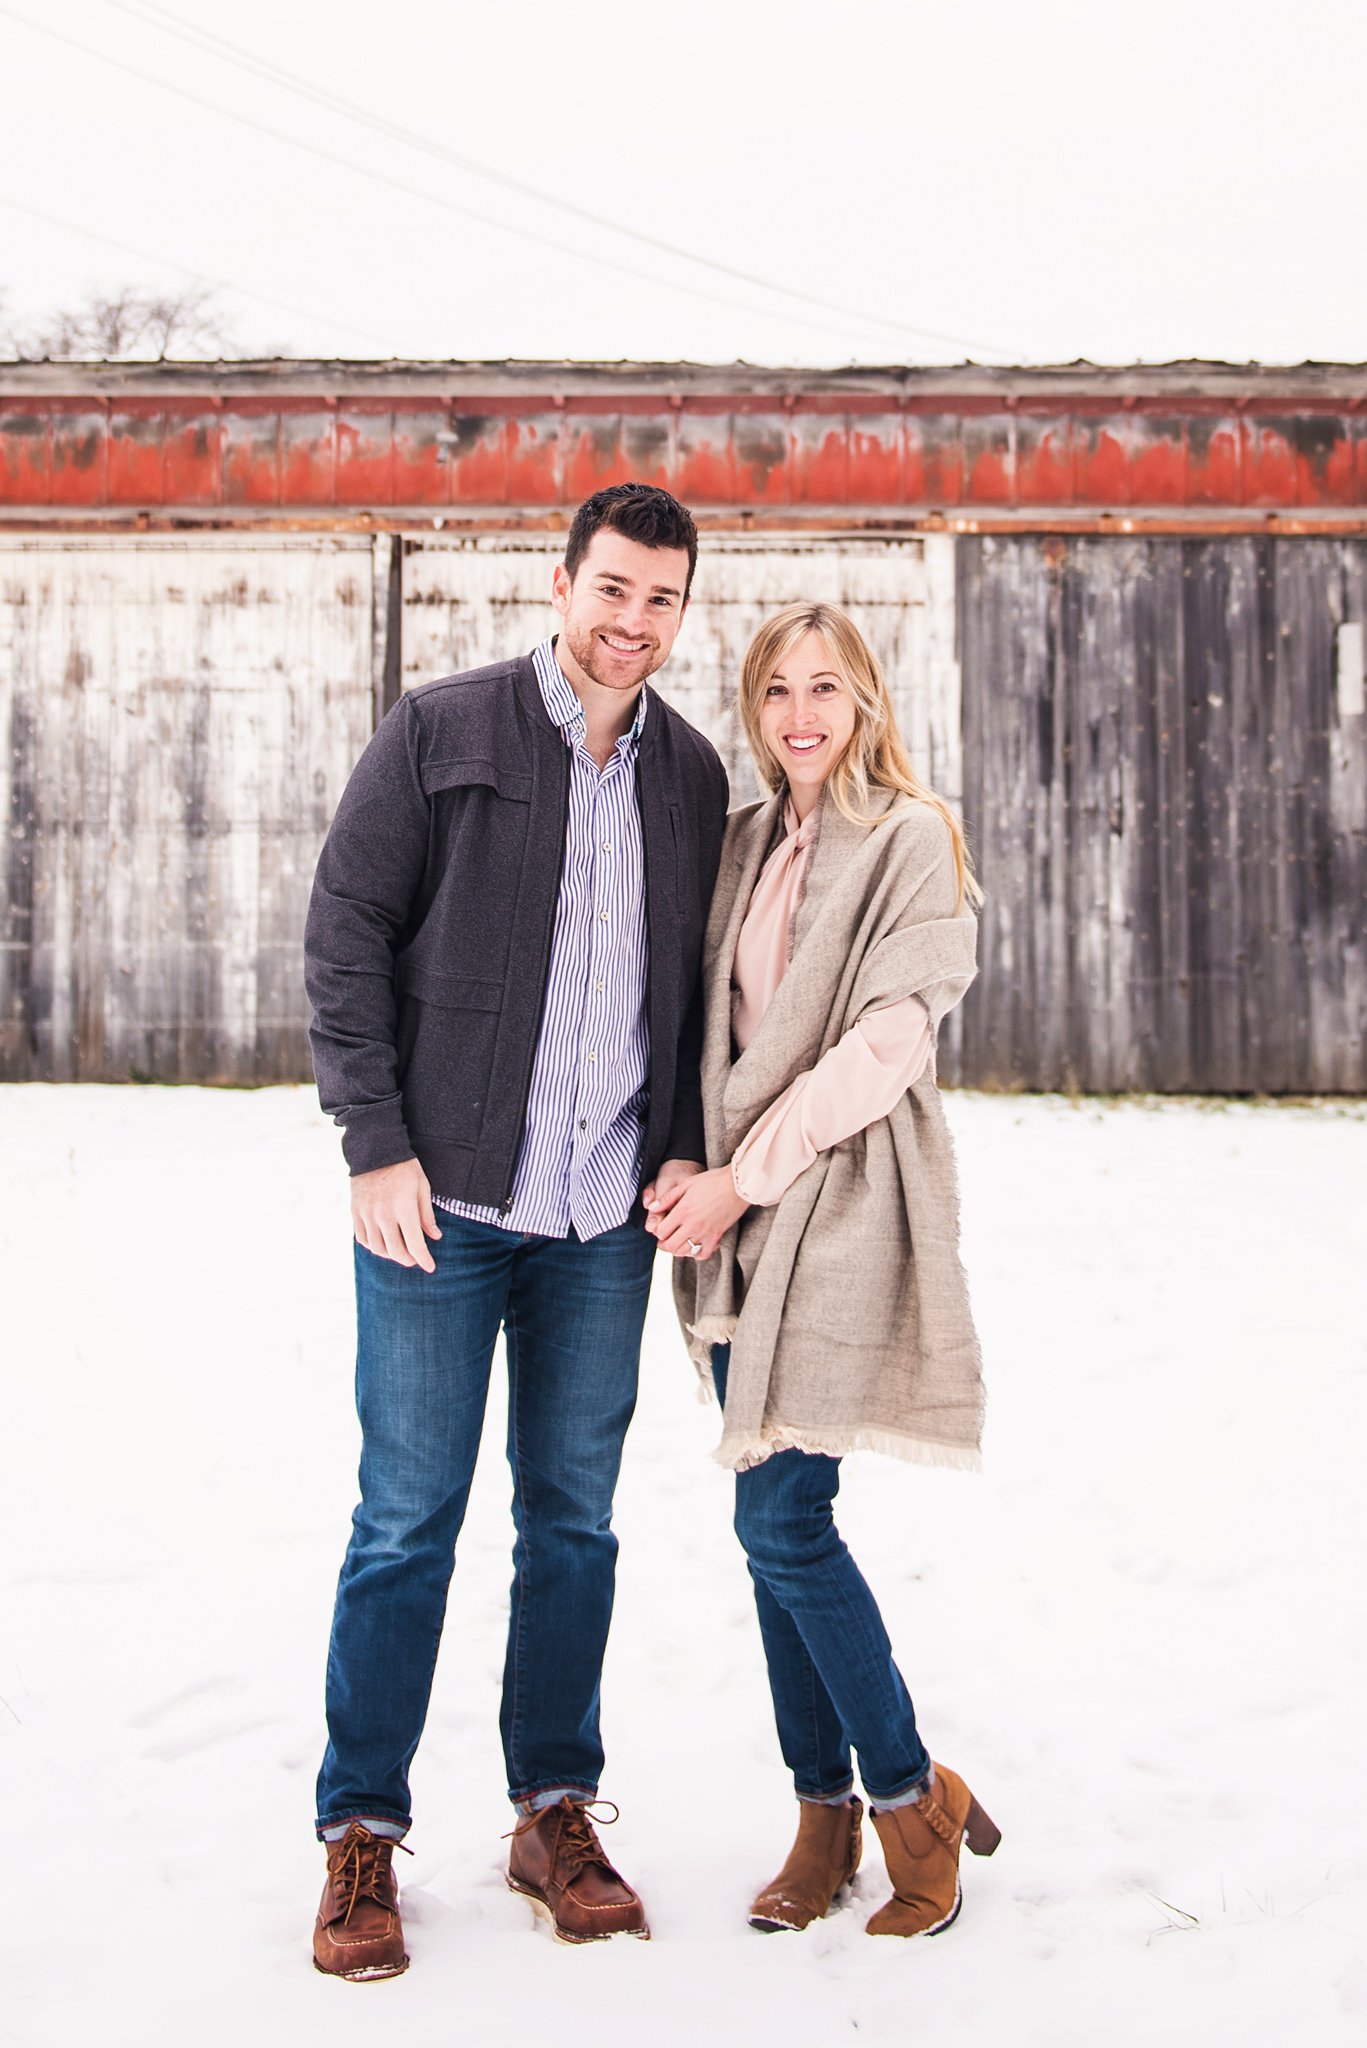 Schoen_Place_Rochester_Engagement_Session_JILL_STUDIO_Rochester_NY_Photographer_DSC_1192.jpg